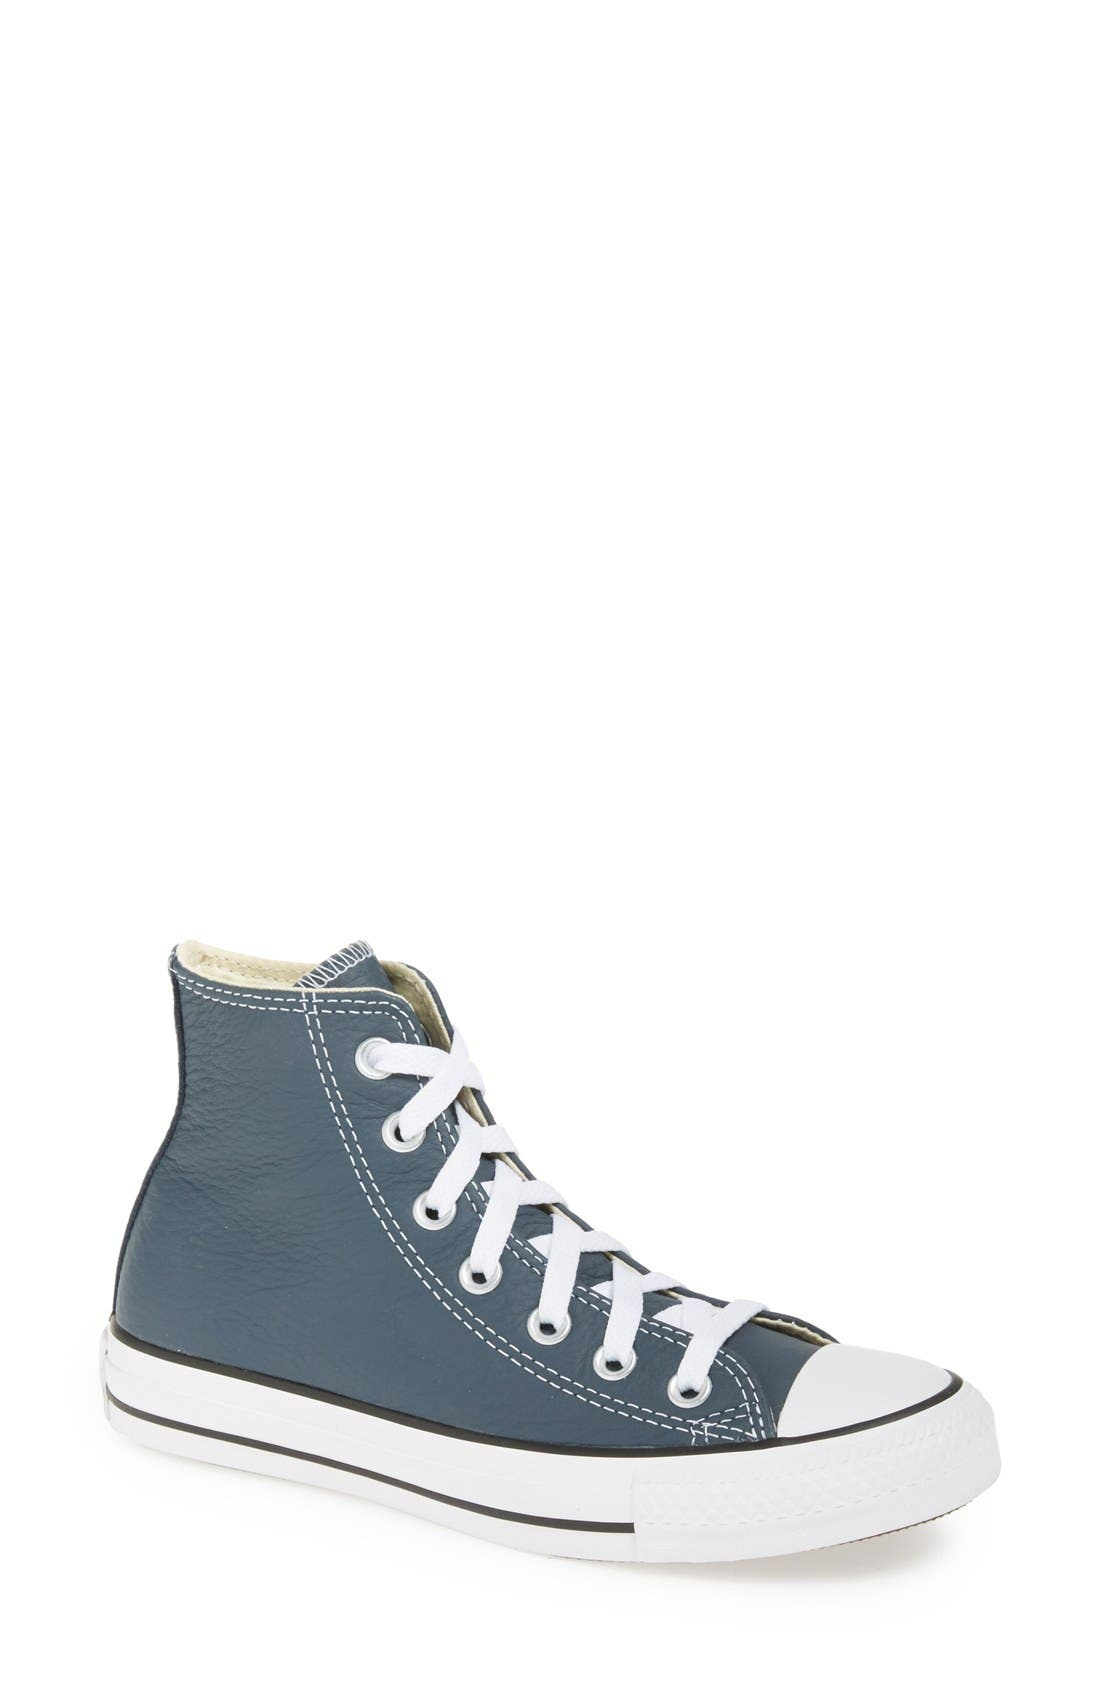 Alternate Image 1 Selected - Converse Chuck Taylor® All Star® High Top Leather Sneaker (Women)